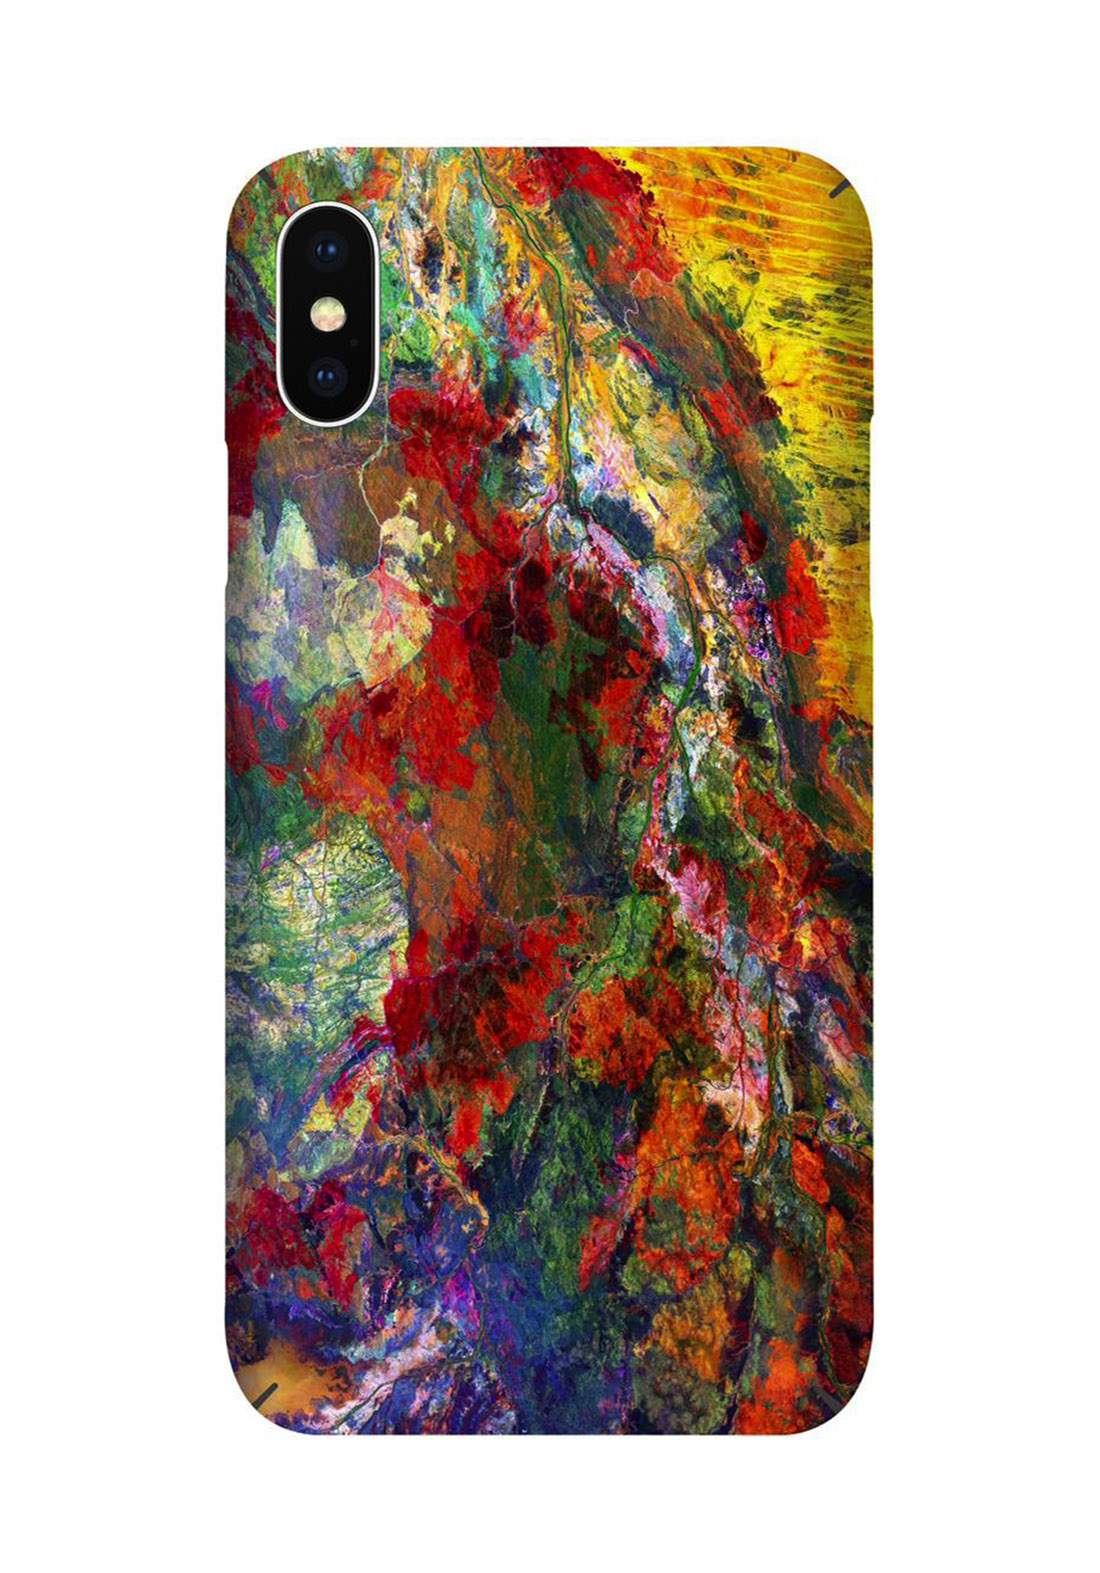 Protective Cover For iphone X Max حافظة موبايل